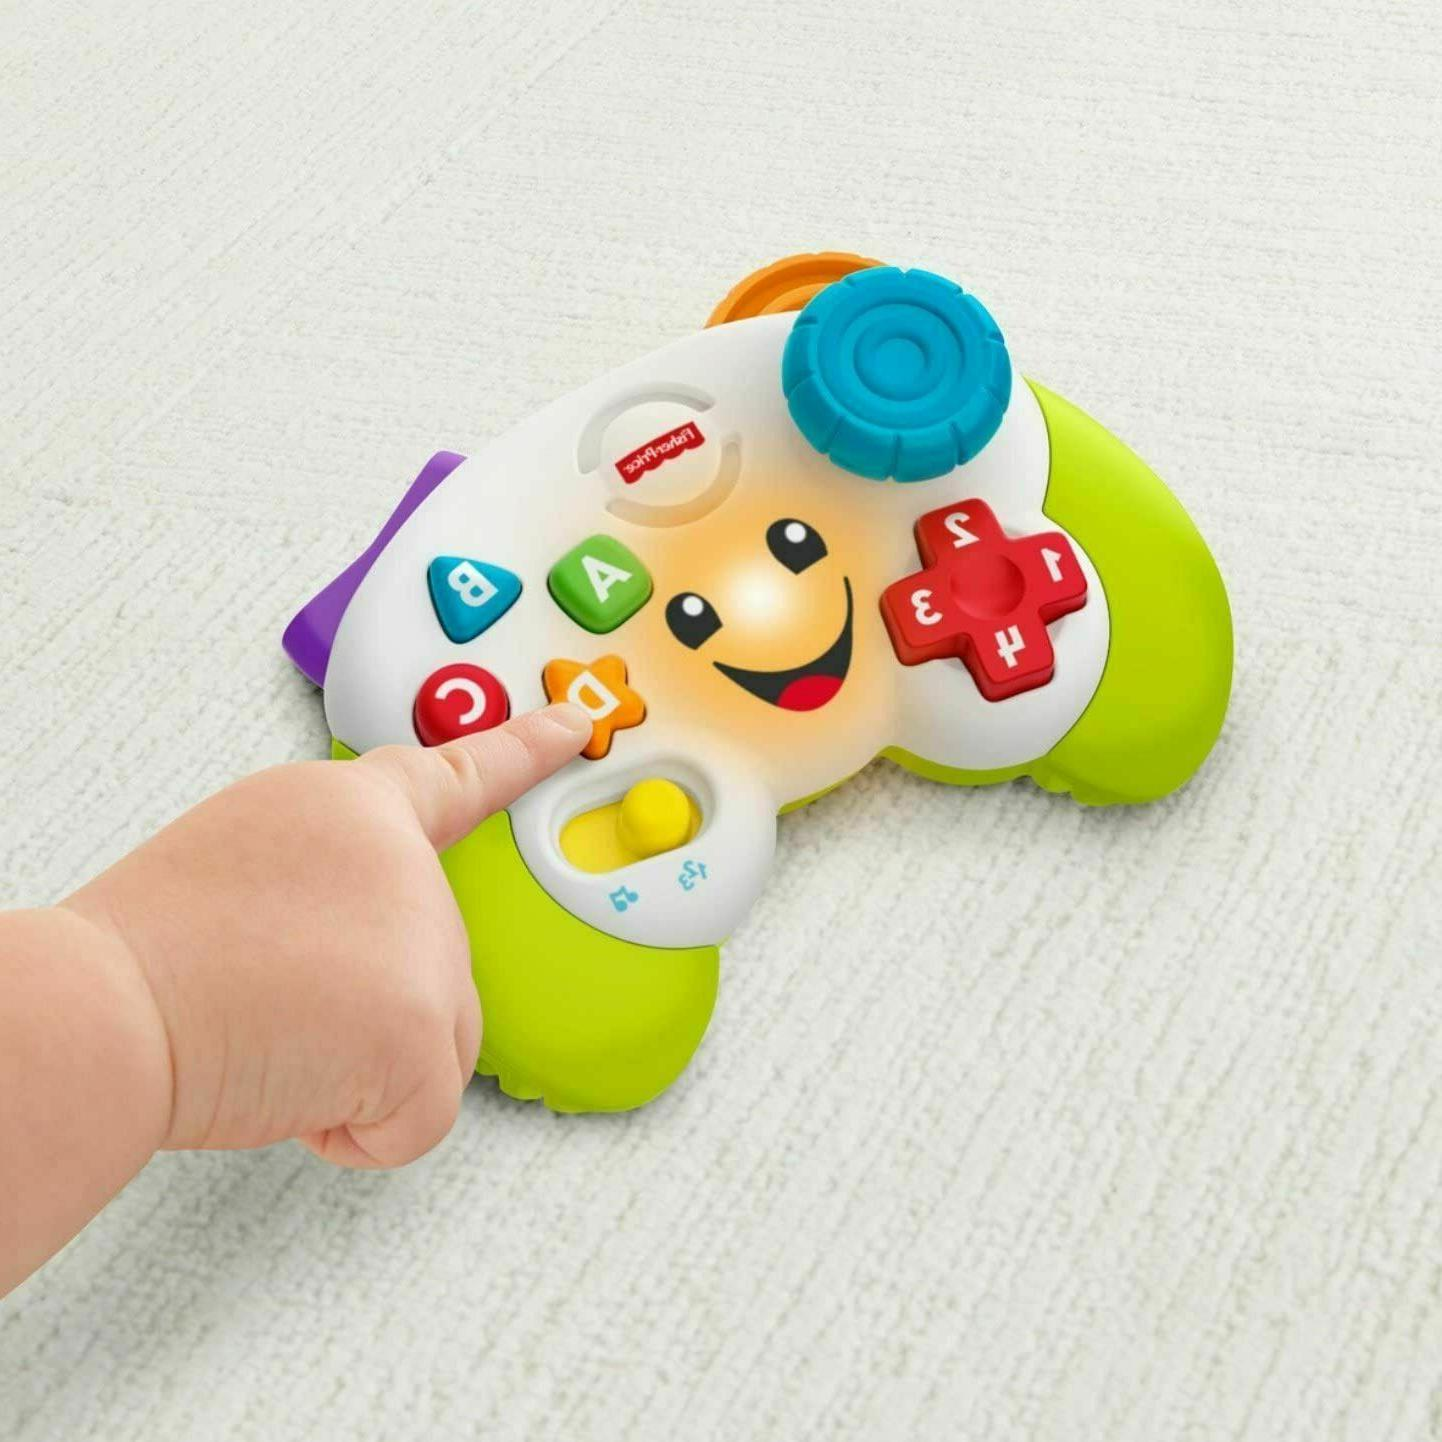 New Educational Toys for 6 Months 2 Babies Kids